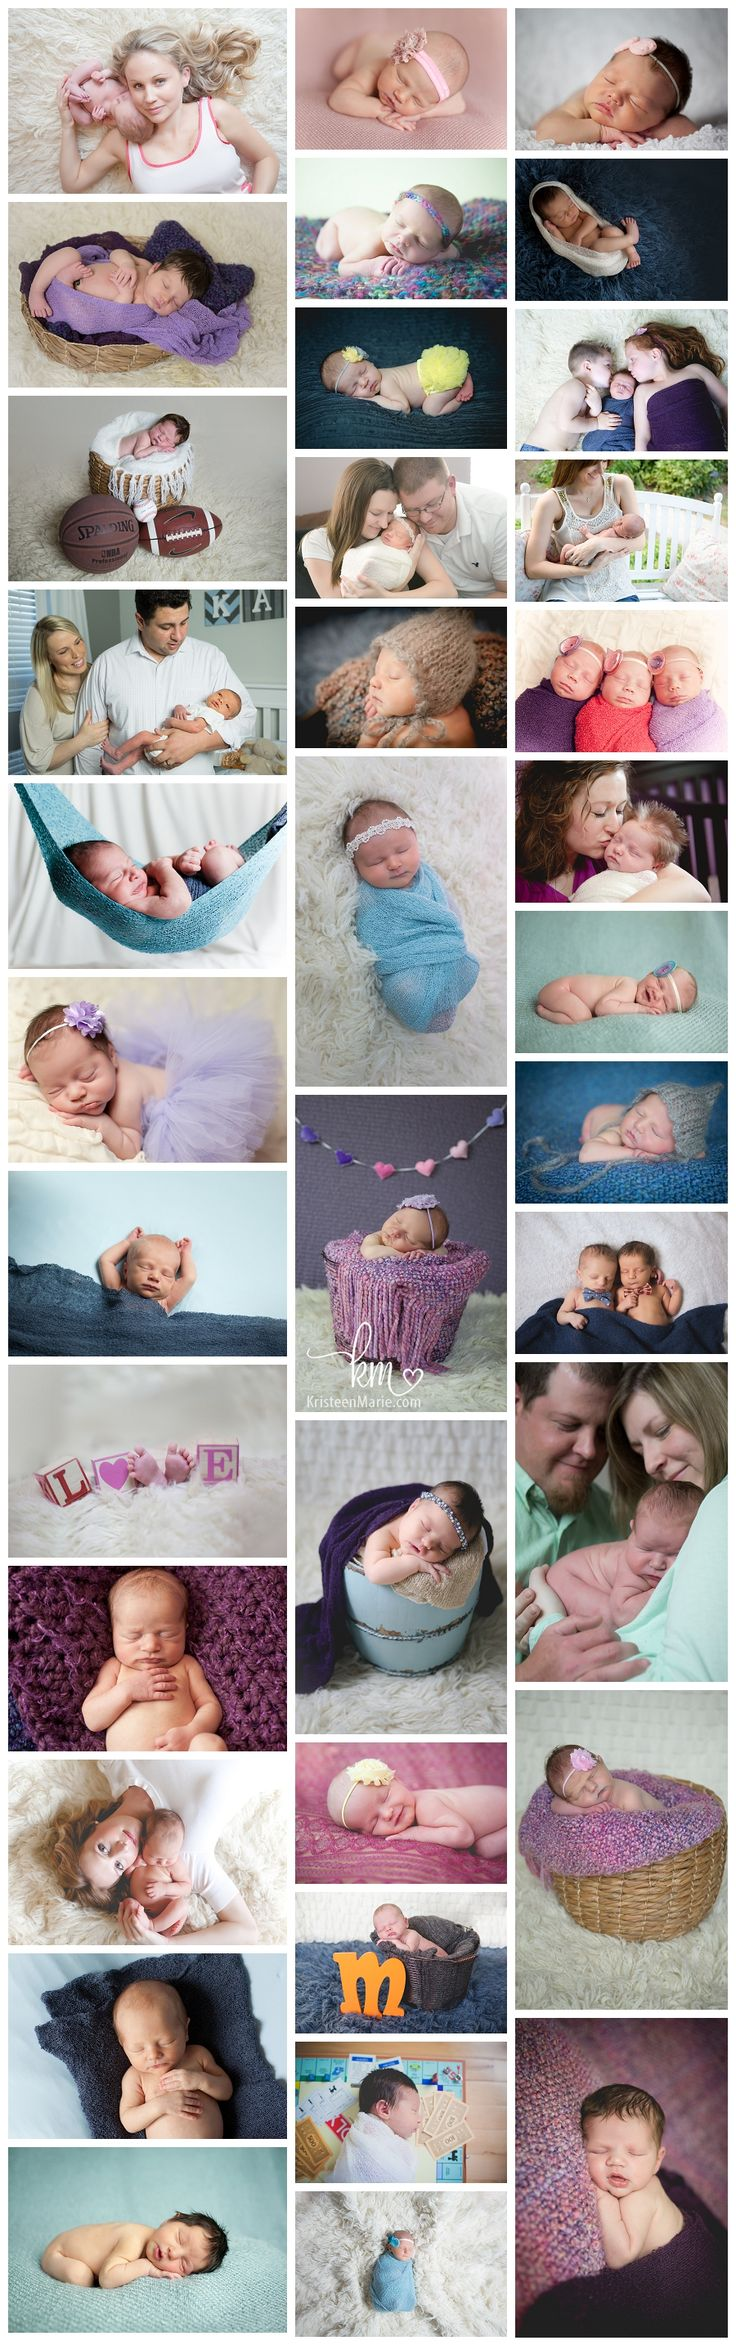 12 Highlights from KristeeenMarie Photography in 2013